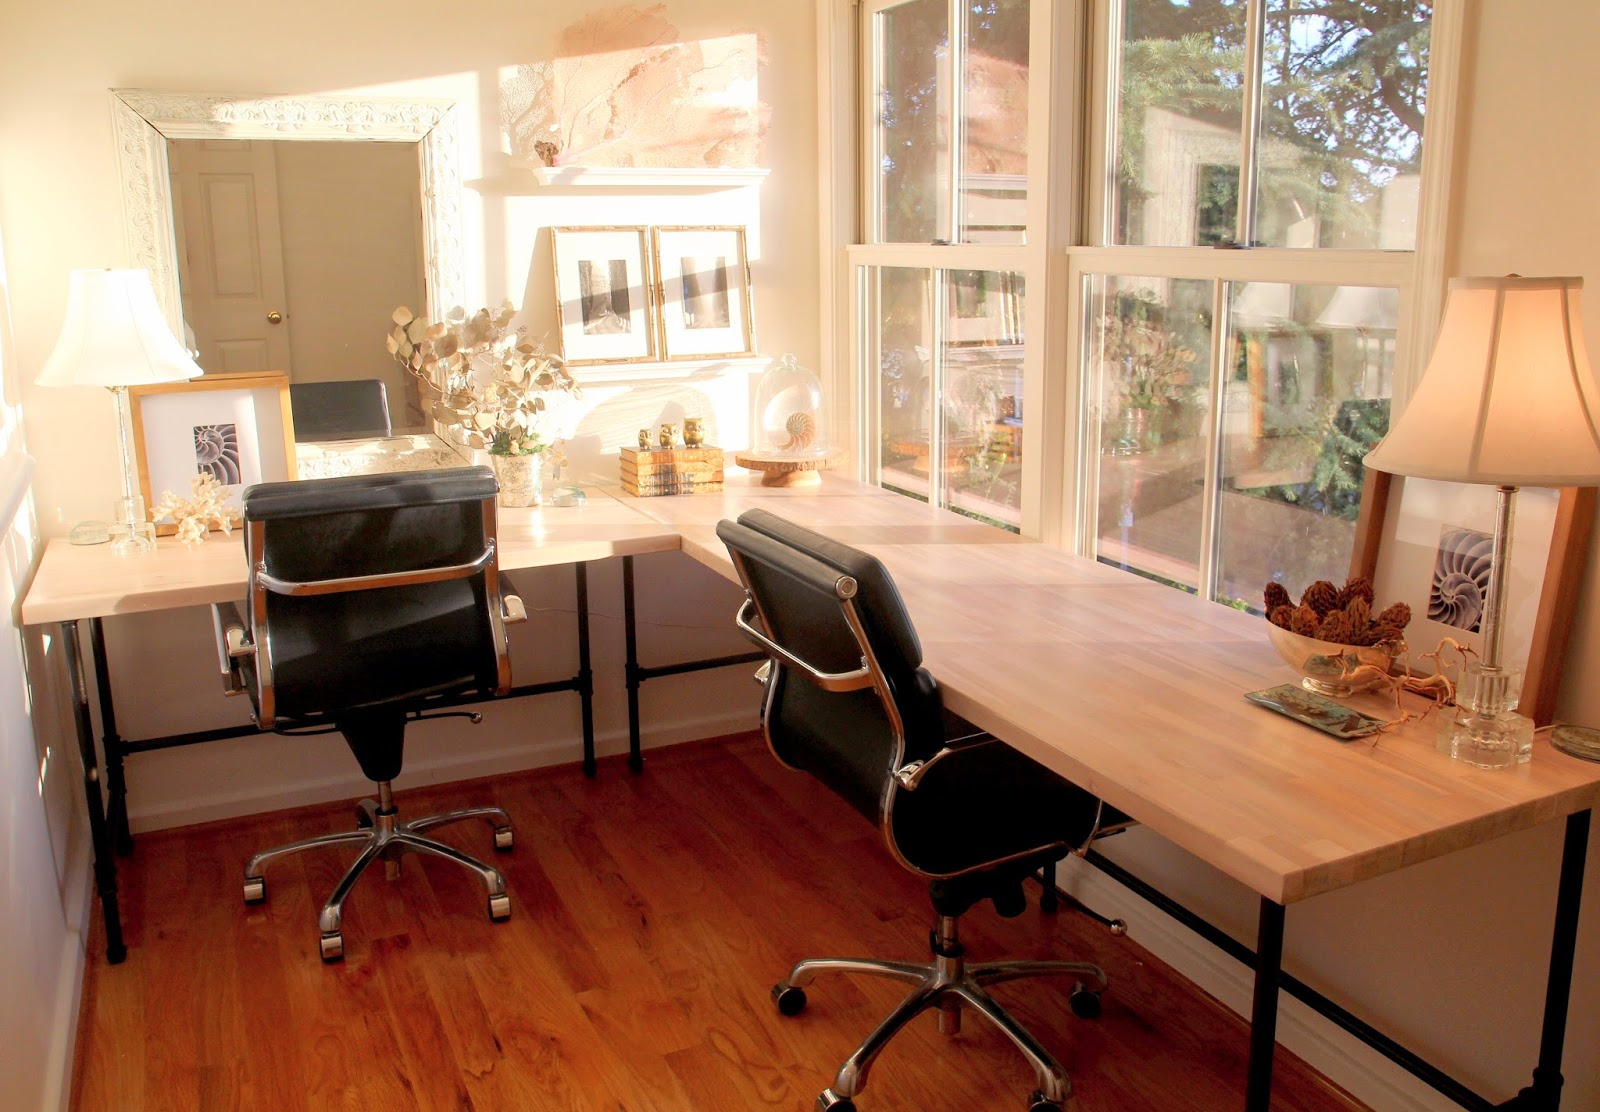 Outstanding Noras Nest Creating Our Home Office Largest Home Design Picture Inspirations Pitcheantrous